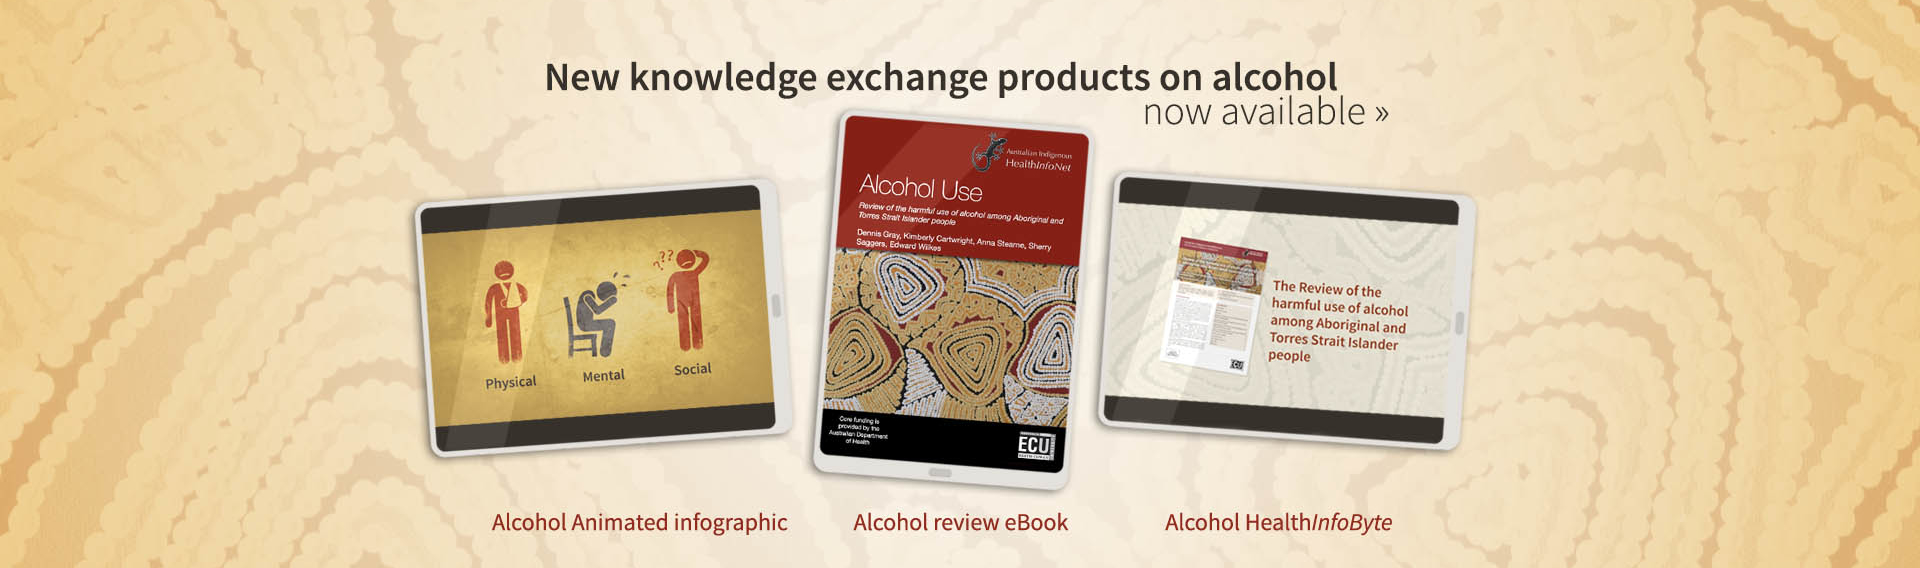 alcohol-products